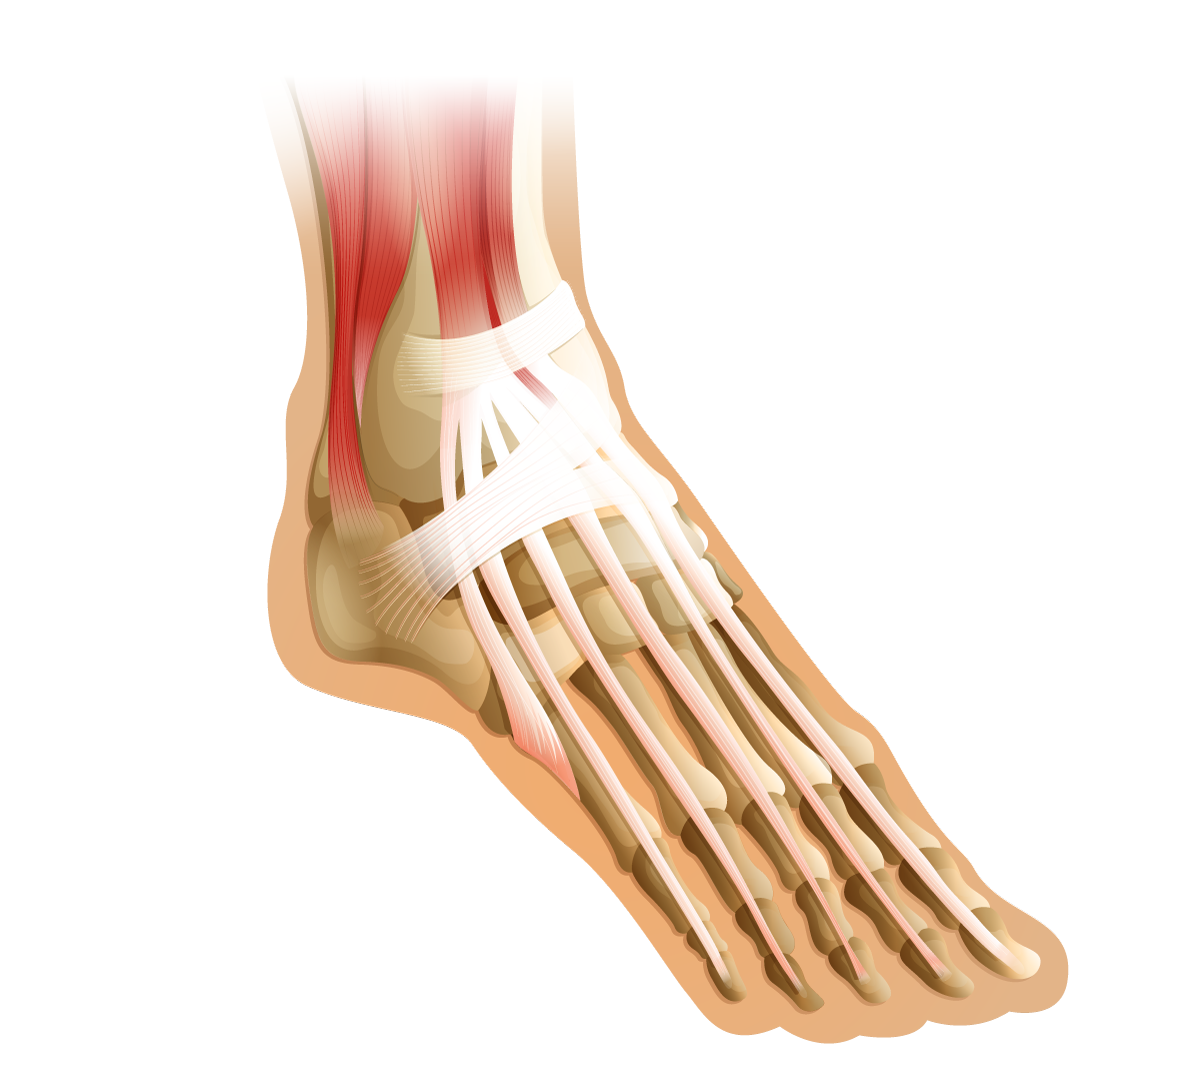 Foot Tendon Injury, Achilles Tendonitis, Peroneal Tendon Injury, Posterior Tibial Tendon Injury. Foot Specialist, foot pain, foot swelling, foot injury